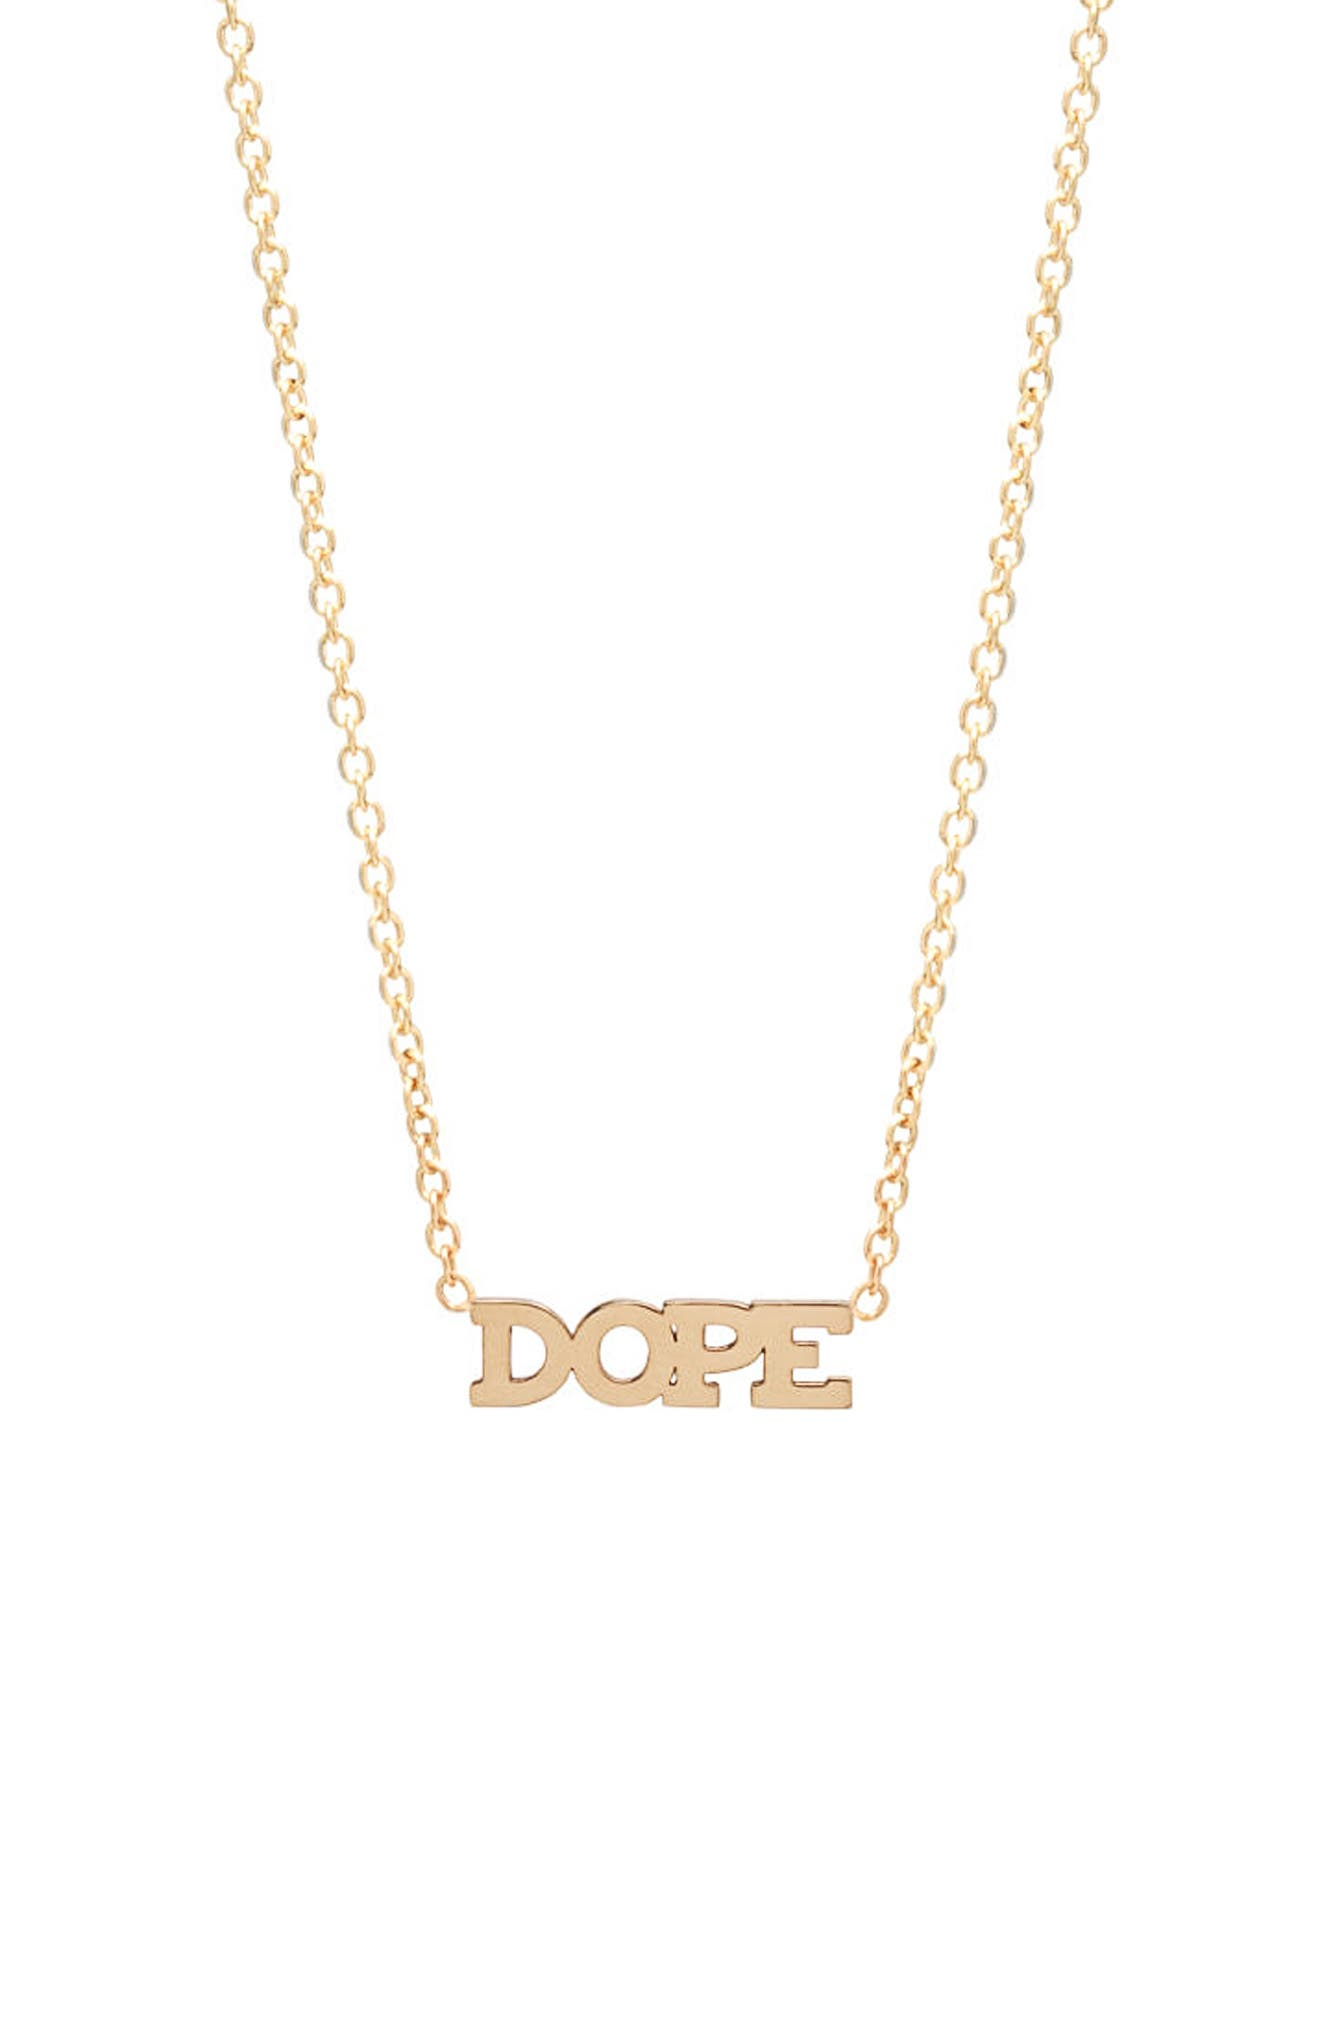 Itty Bitty Dope Pendant Necklace,                         Main,                         color, Yellow Gold